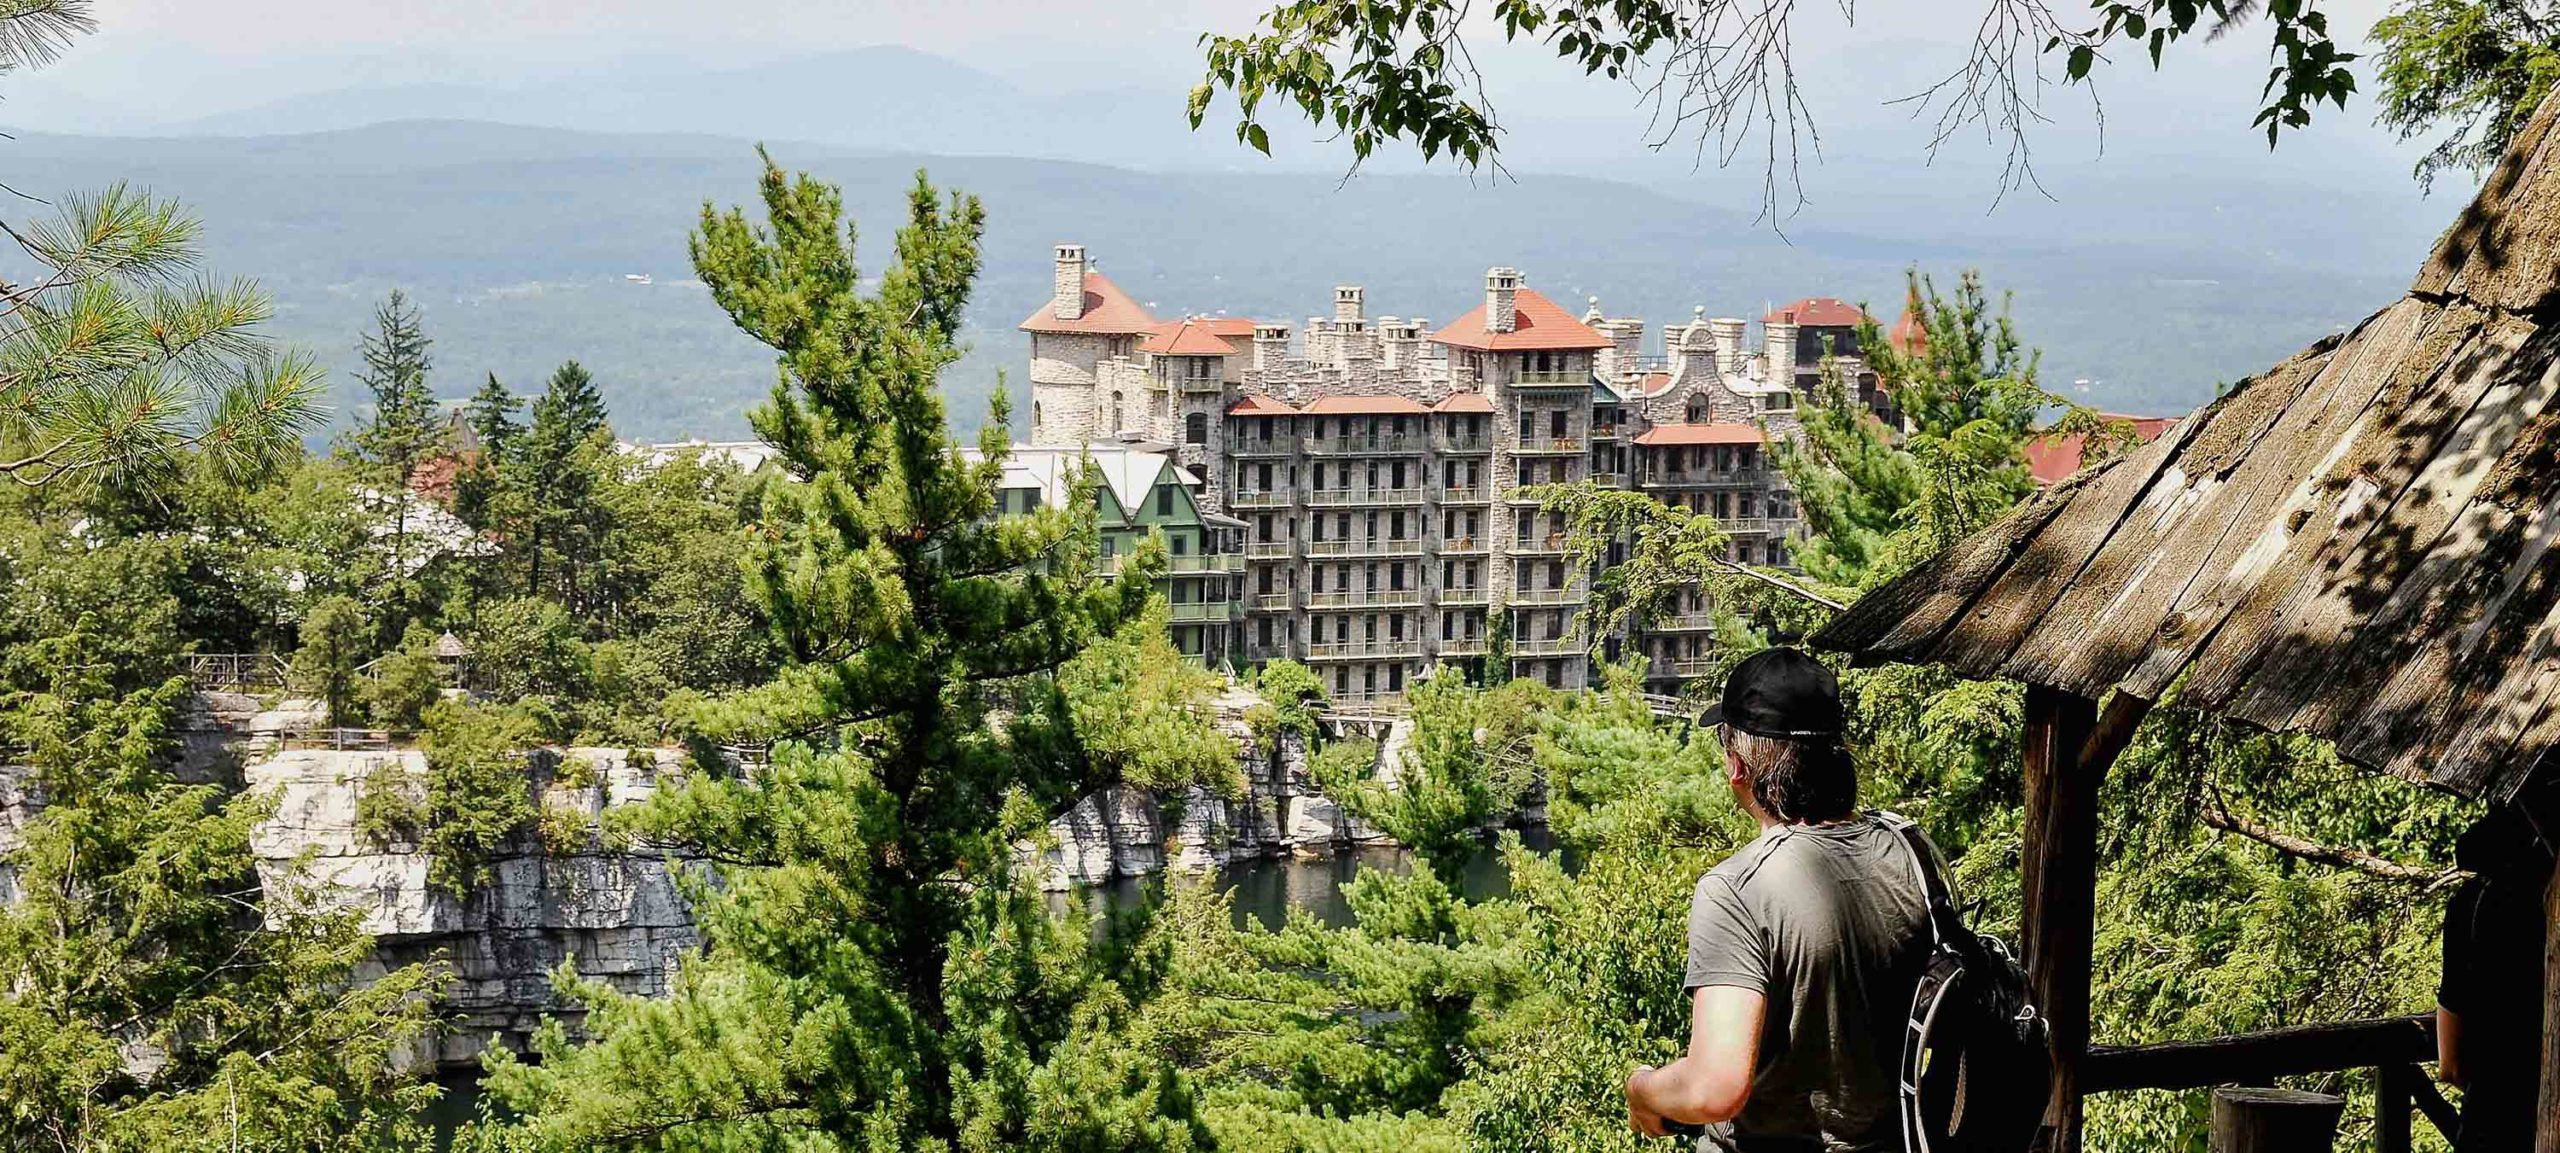 Person overlooking Mohonk Mountain House